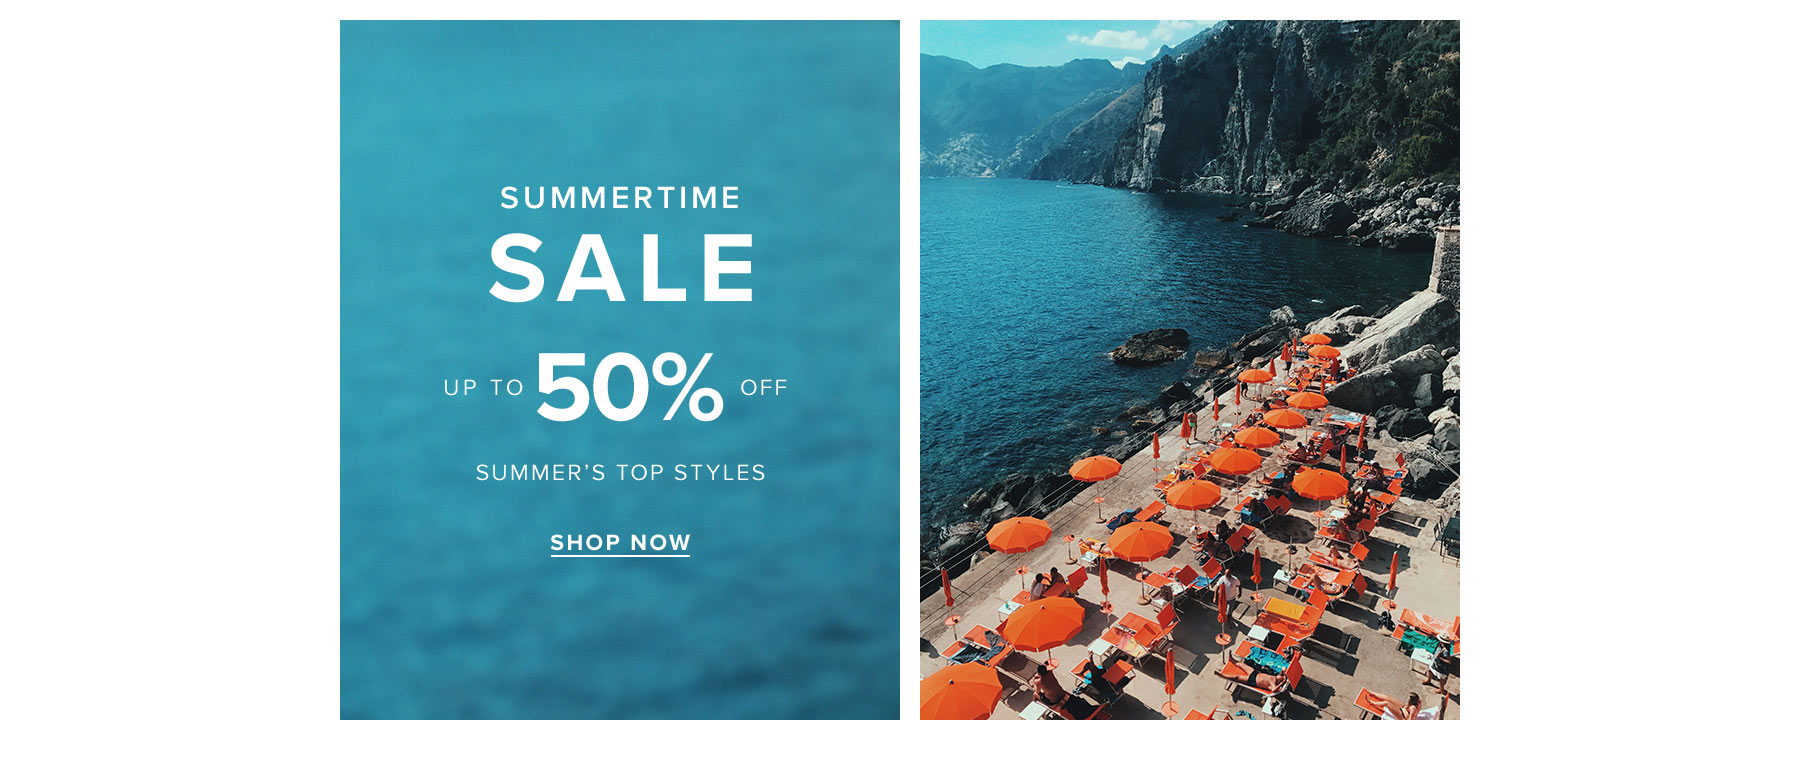 Summertime sale. Up to 50% off summer's top styles . Shop now.